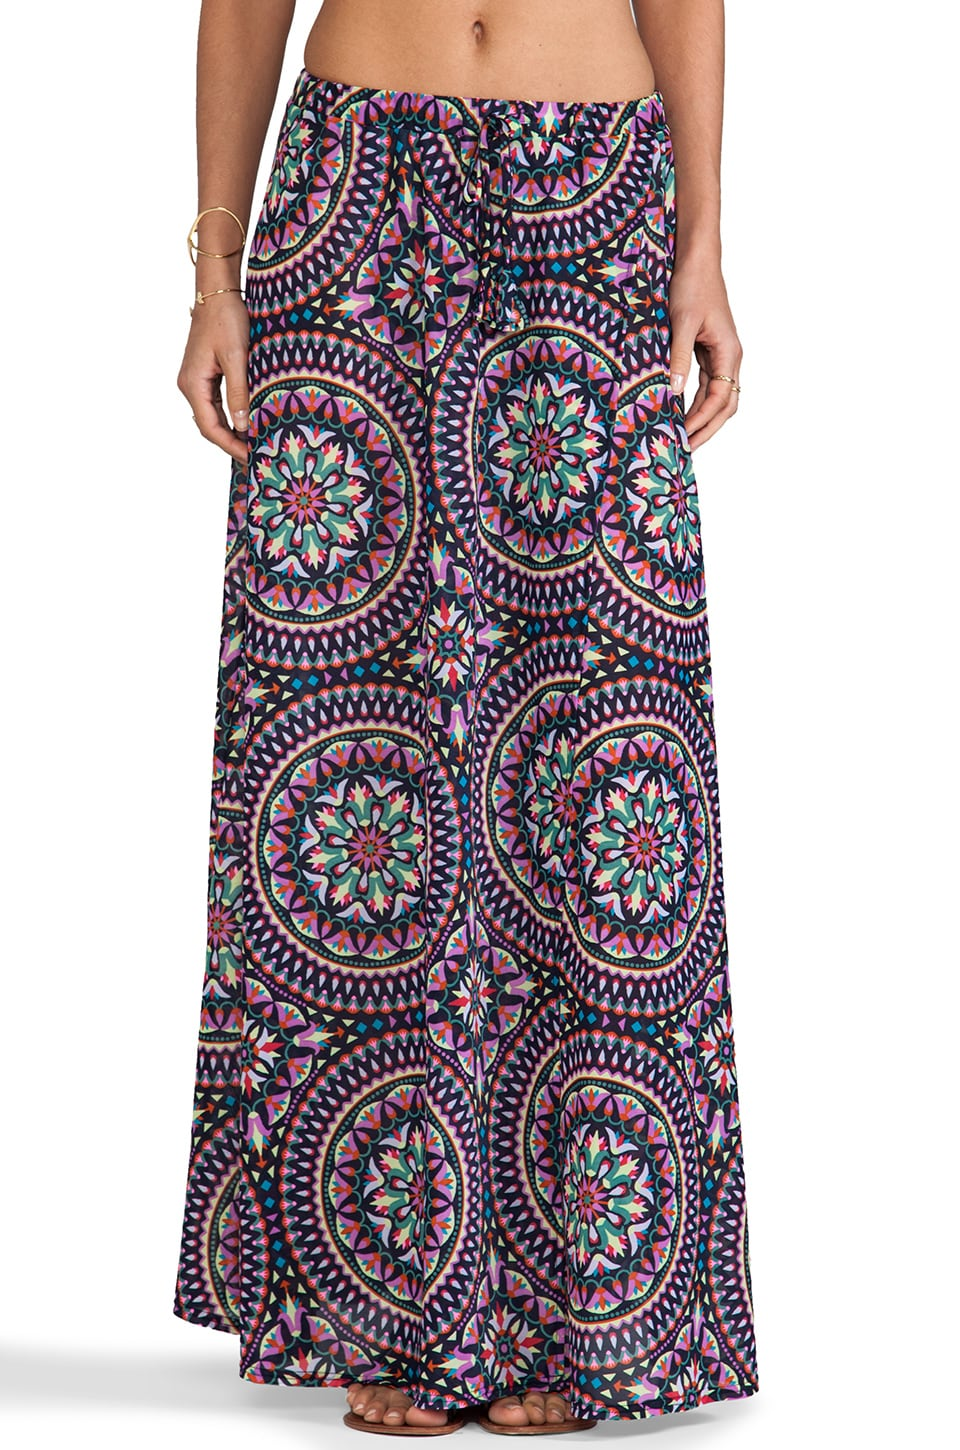 Tigerlily Cairo Skirt in Indigo